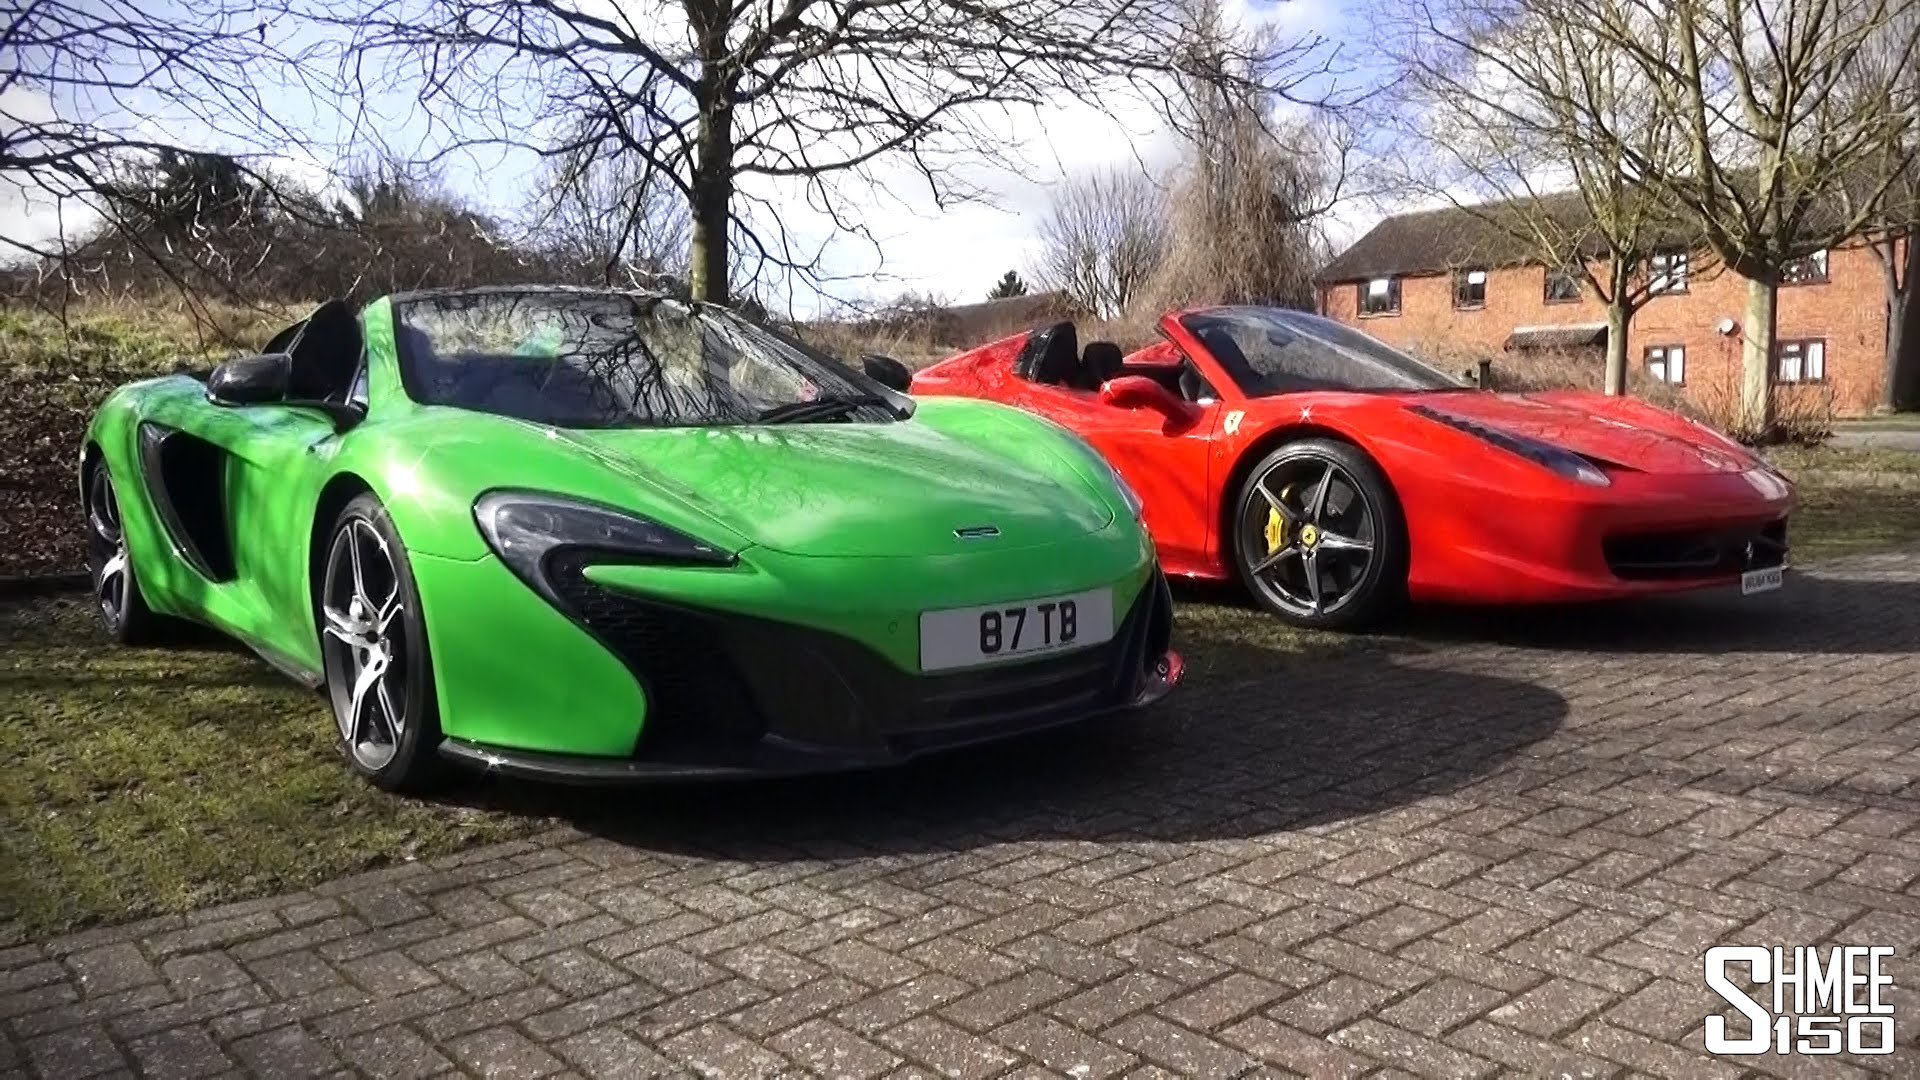 spiders inside-out: mclaren 650s and ferrari 458 - youtube spiders